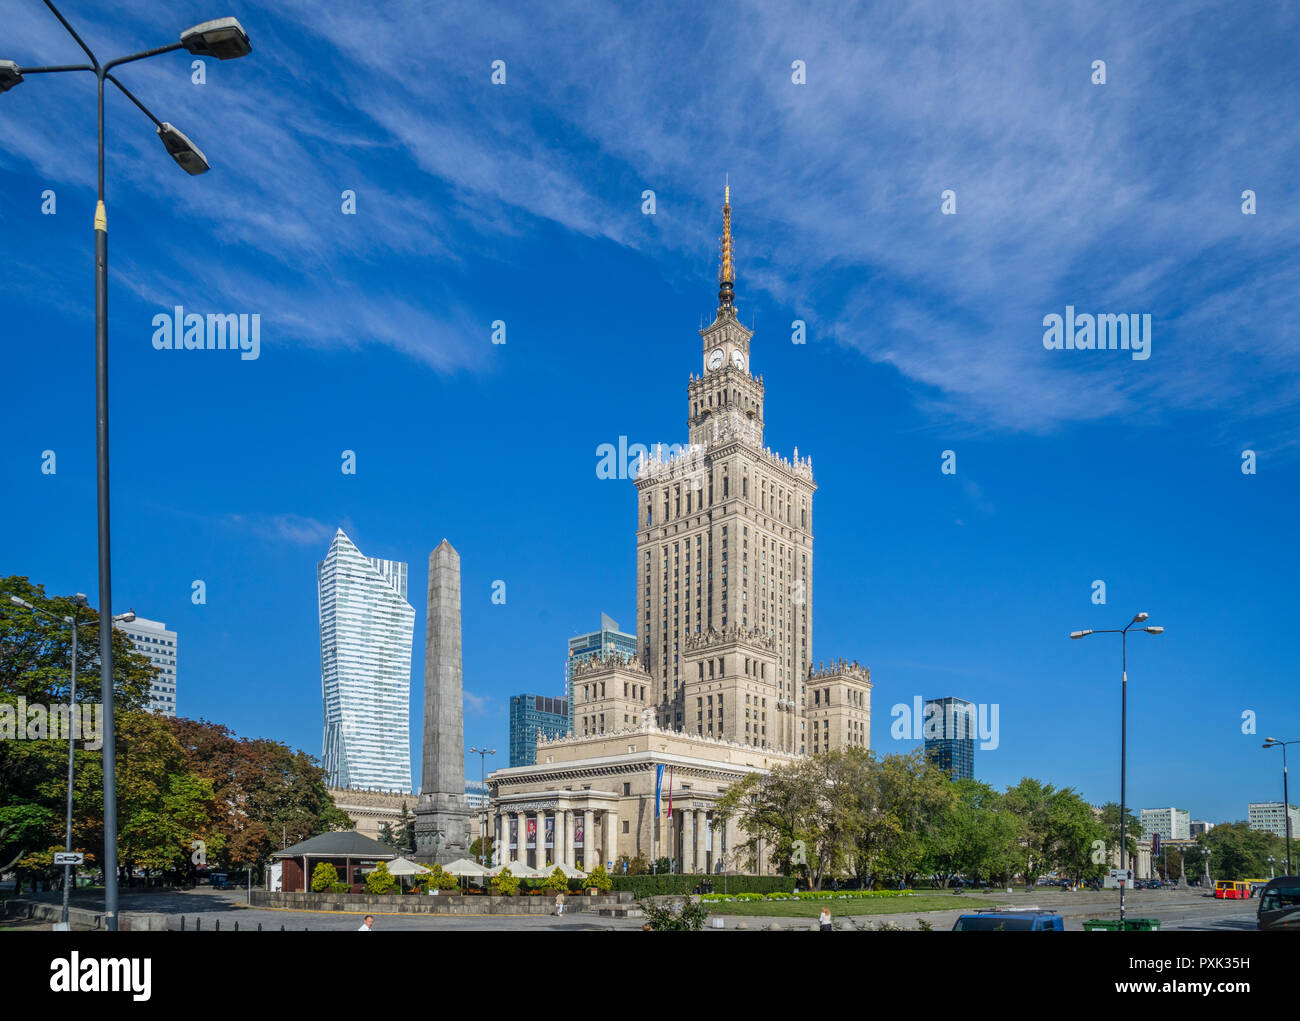 the soc-realist Russian Wedding Cake style Palace of Culture and Science with theZłota 44 skyscraper looming in the background, Warsaw, Poland - Stock Image